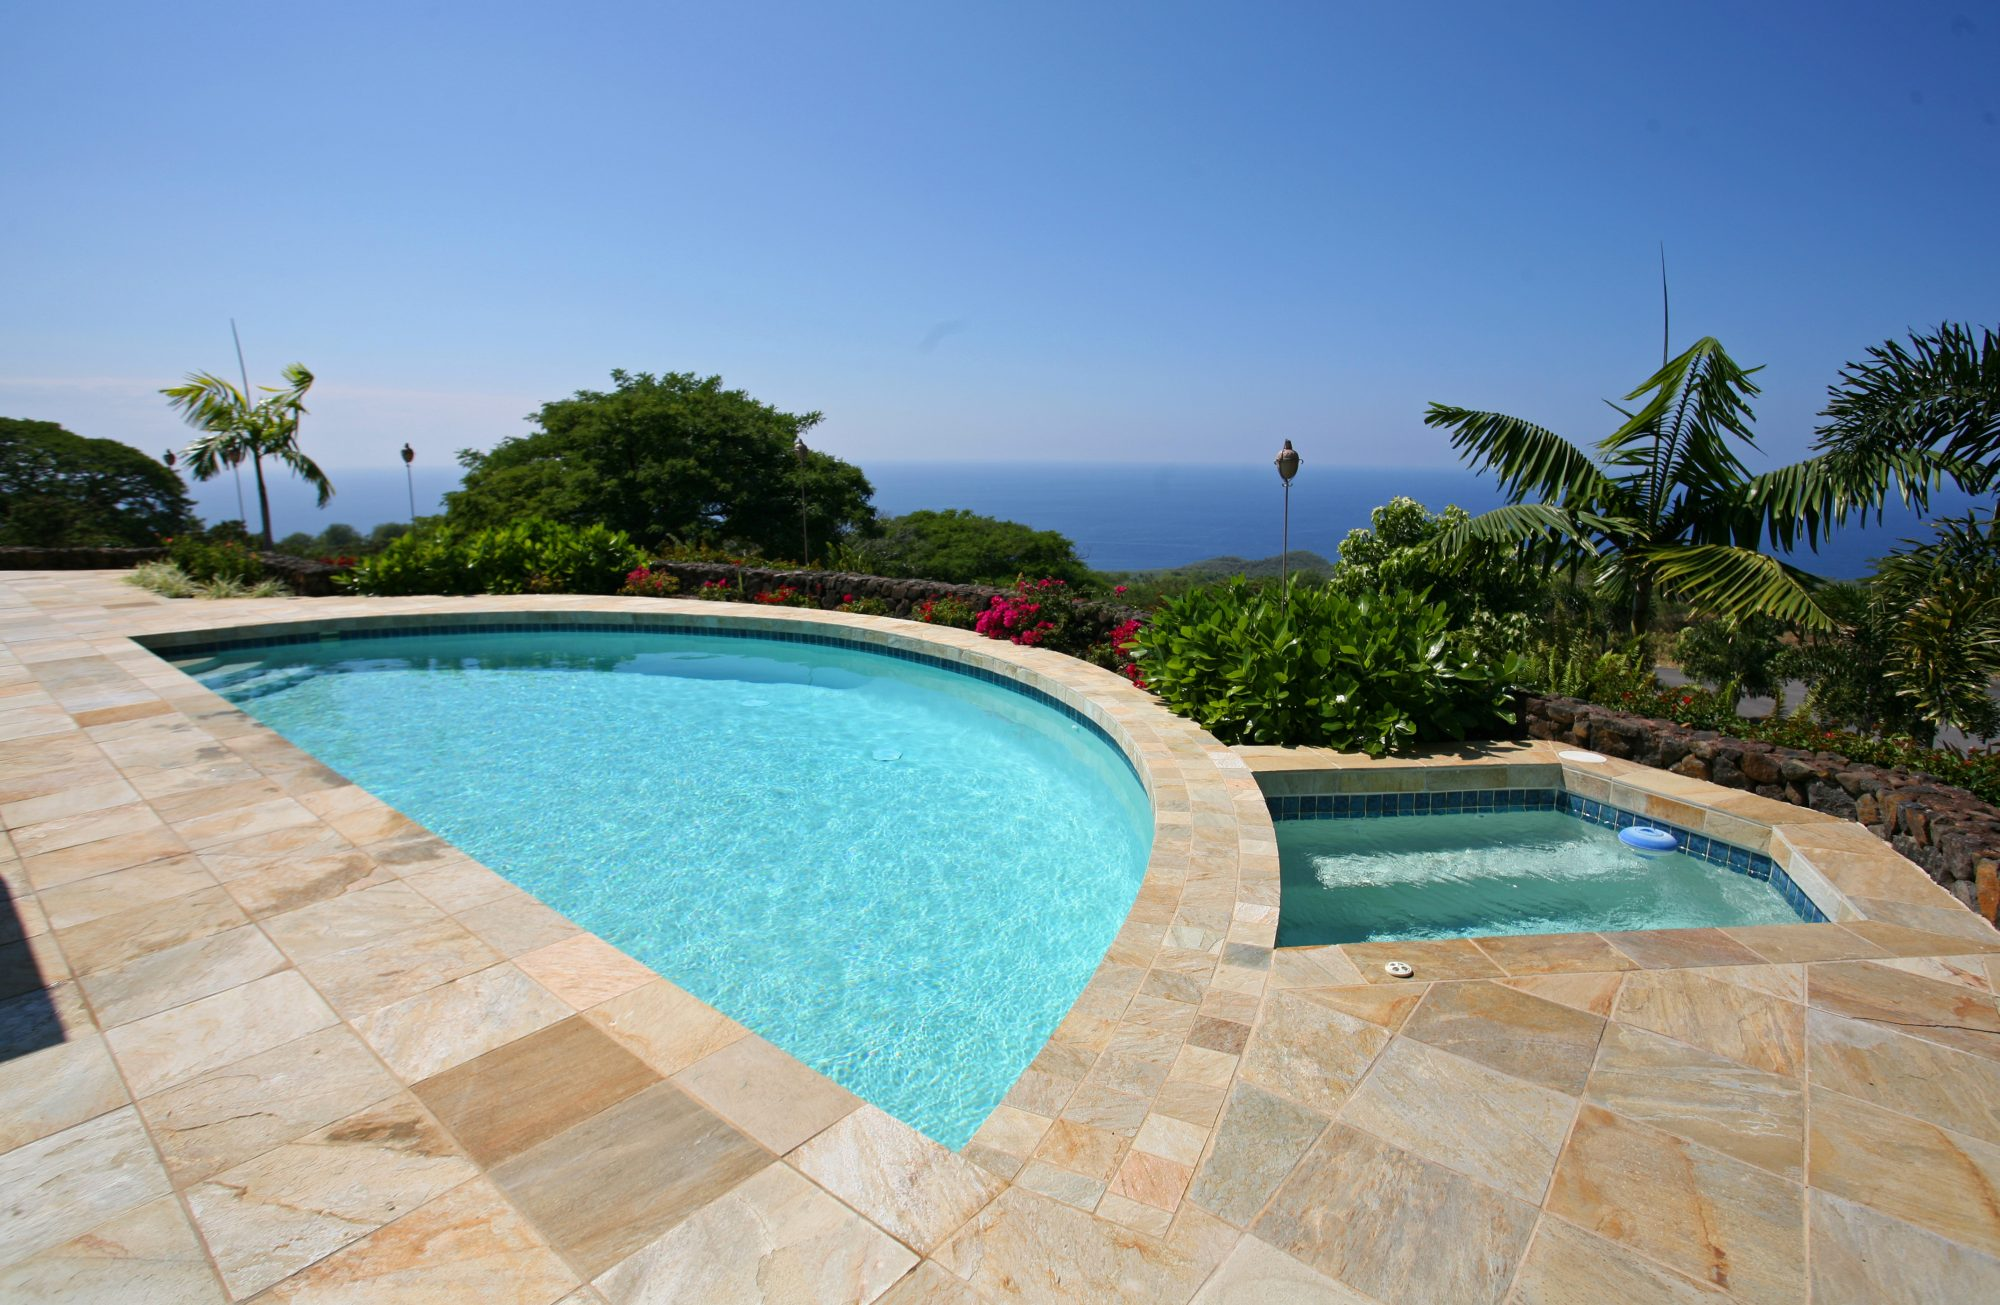 The Auamo Compound, Pool and View